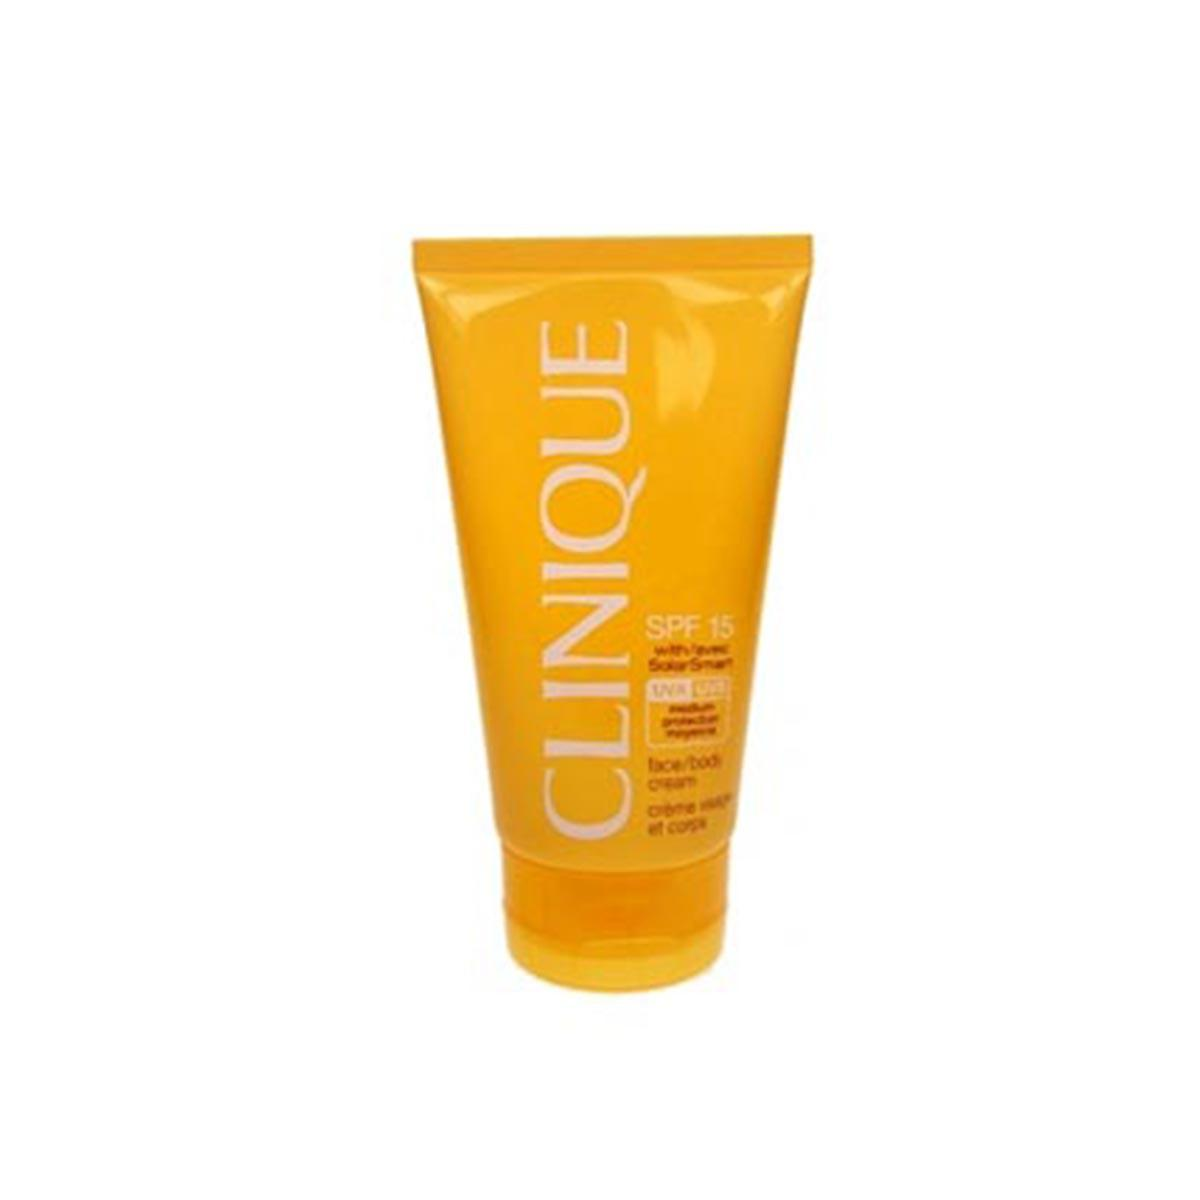 Clinique-fragrances Solar Face Body Cream Spf15 150ml